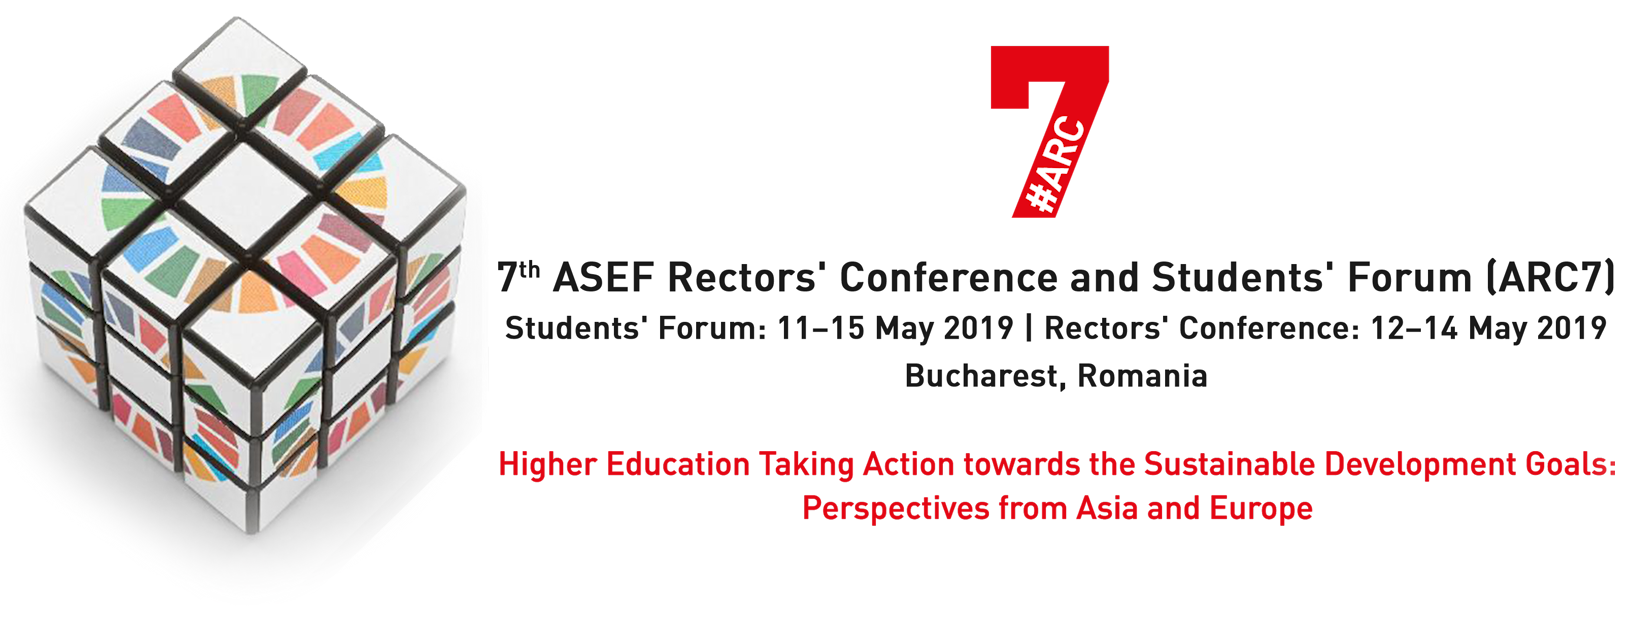 7th ASEF Rectors' Conference and Students' Forum (ARC7)